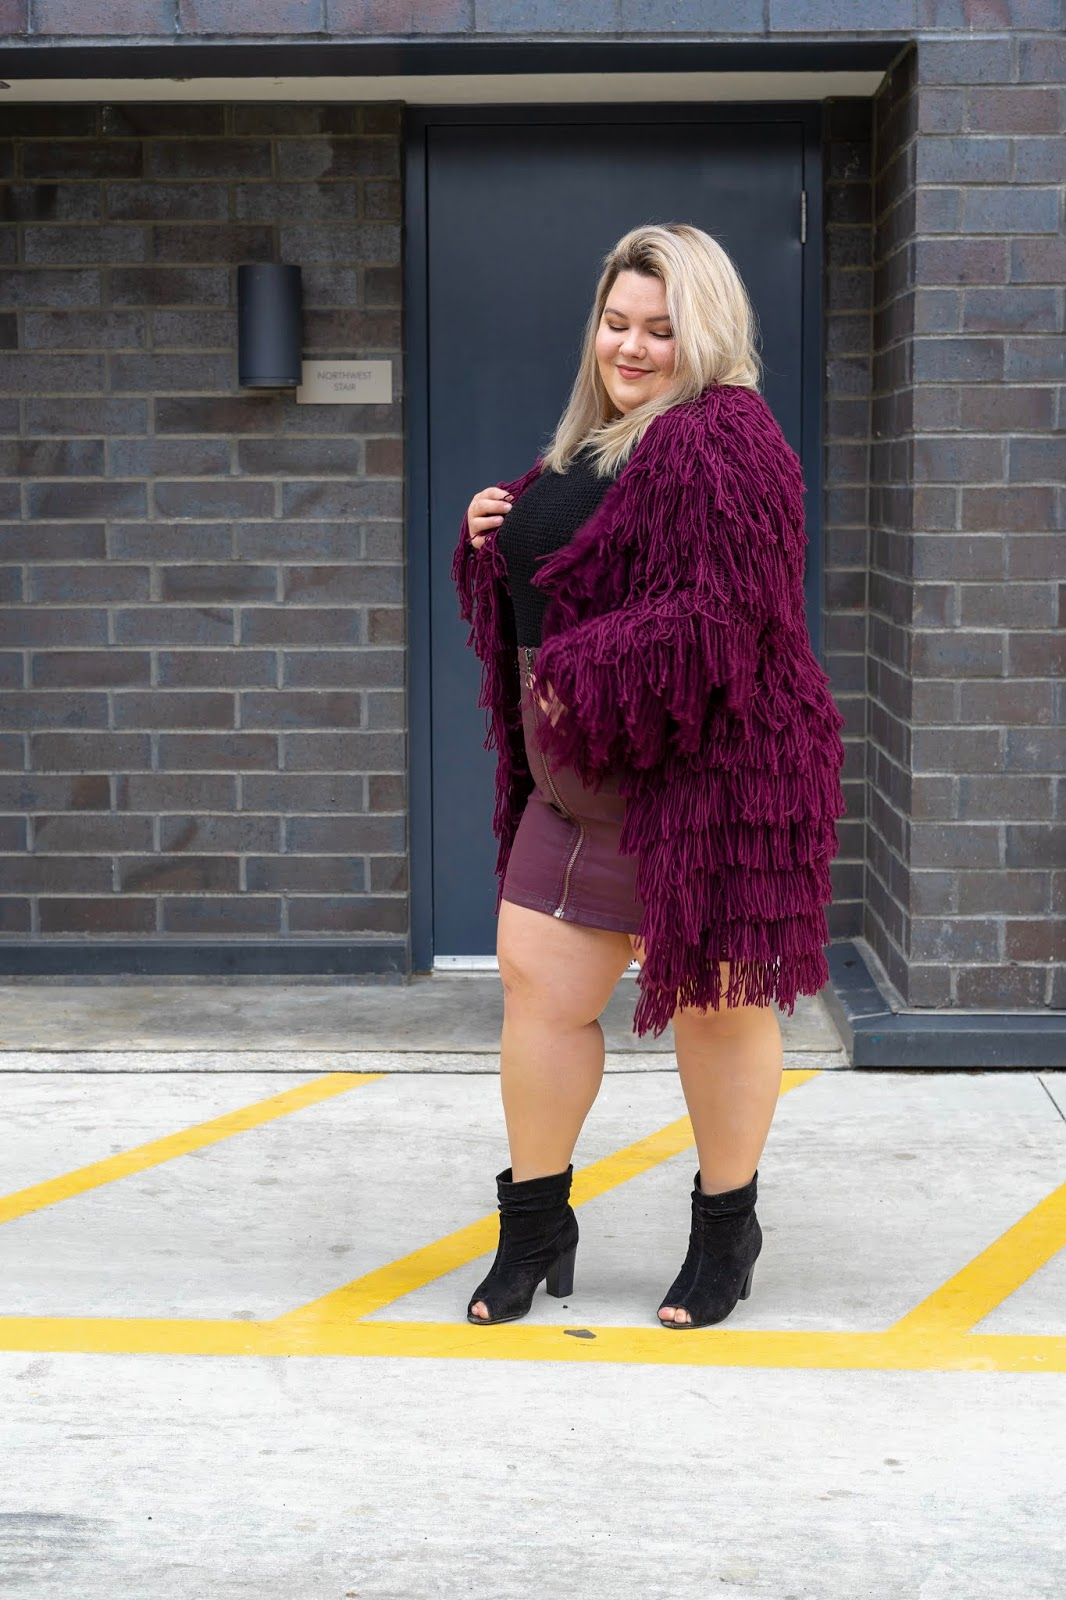 Chicago Plus Size Petite Fashion Blogger and model Natalie Craig, of Natalie in the City, reviews fashion nova curve's fringe Abbot Kinney Cardigan II and Burnin' Bridges Skirt.